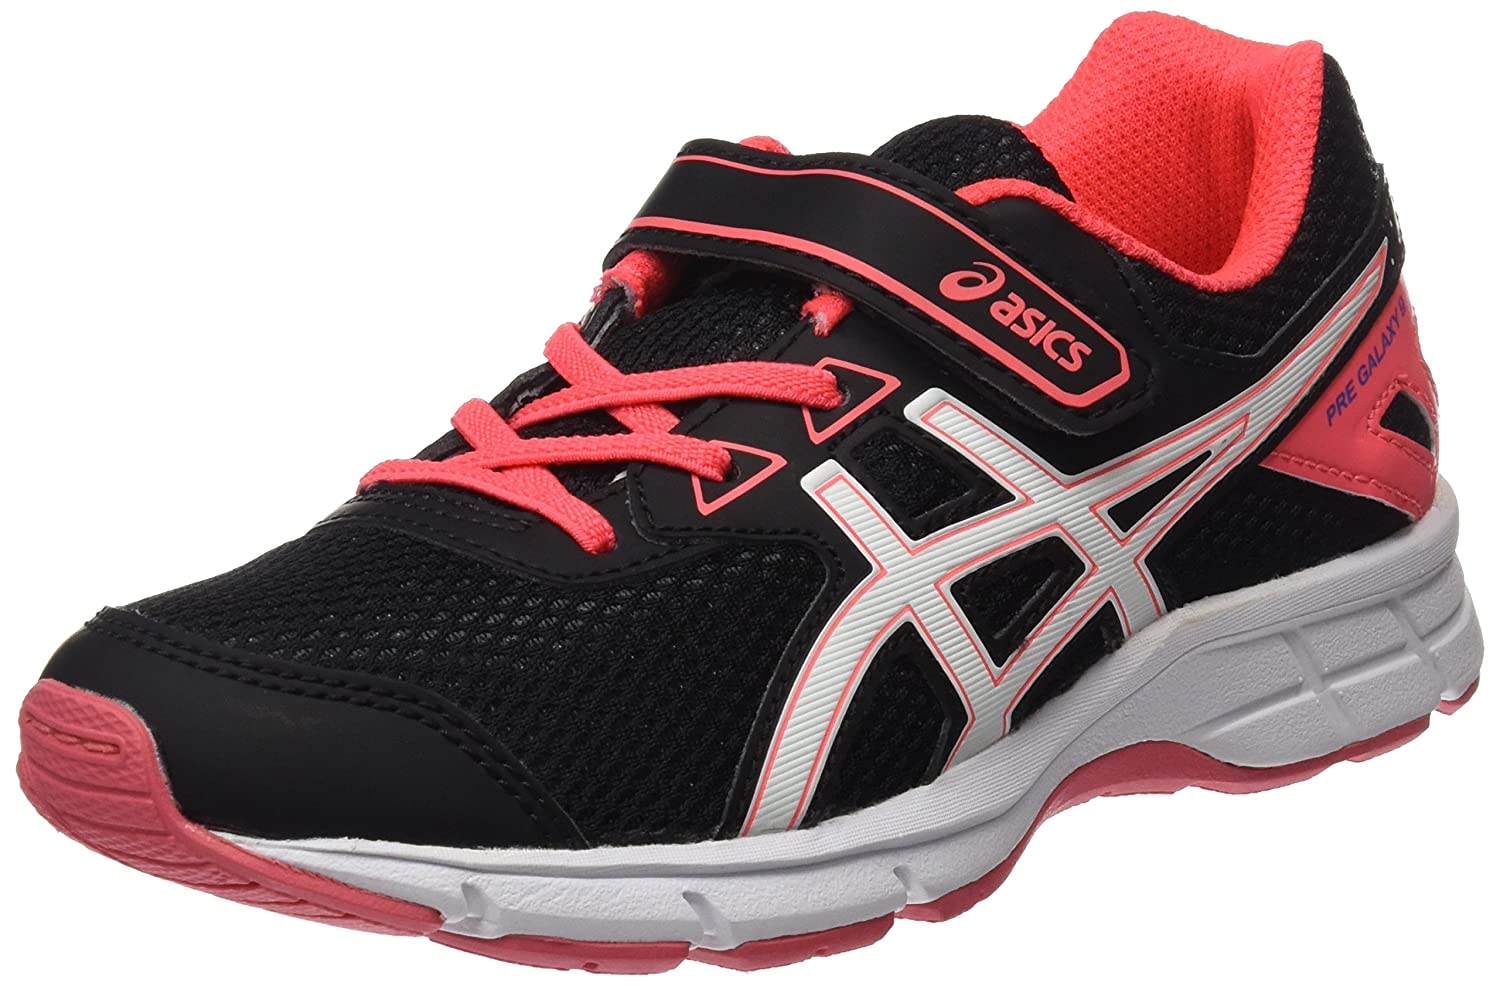 Asics SS17 Junior Galaxy 9 PS Velcro Running Shoes - Neutral - Black/Pink - UK 1